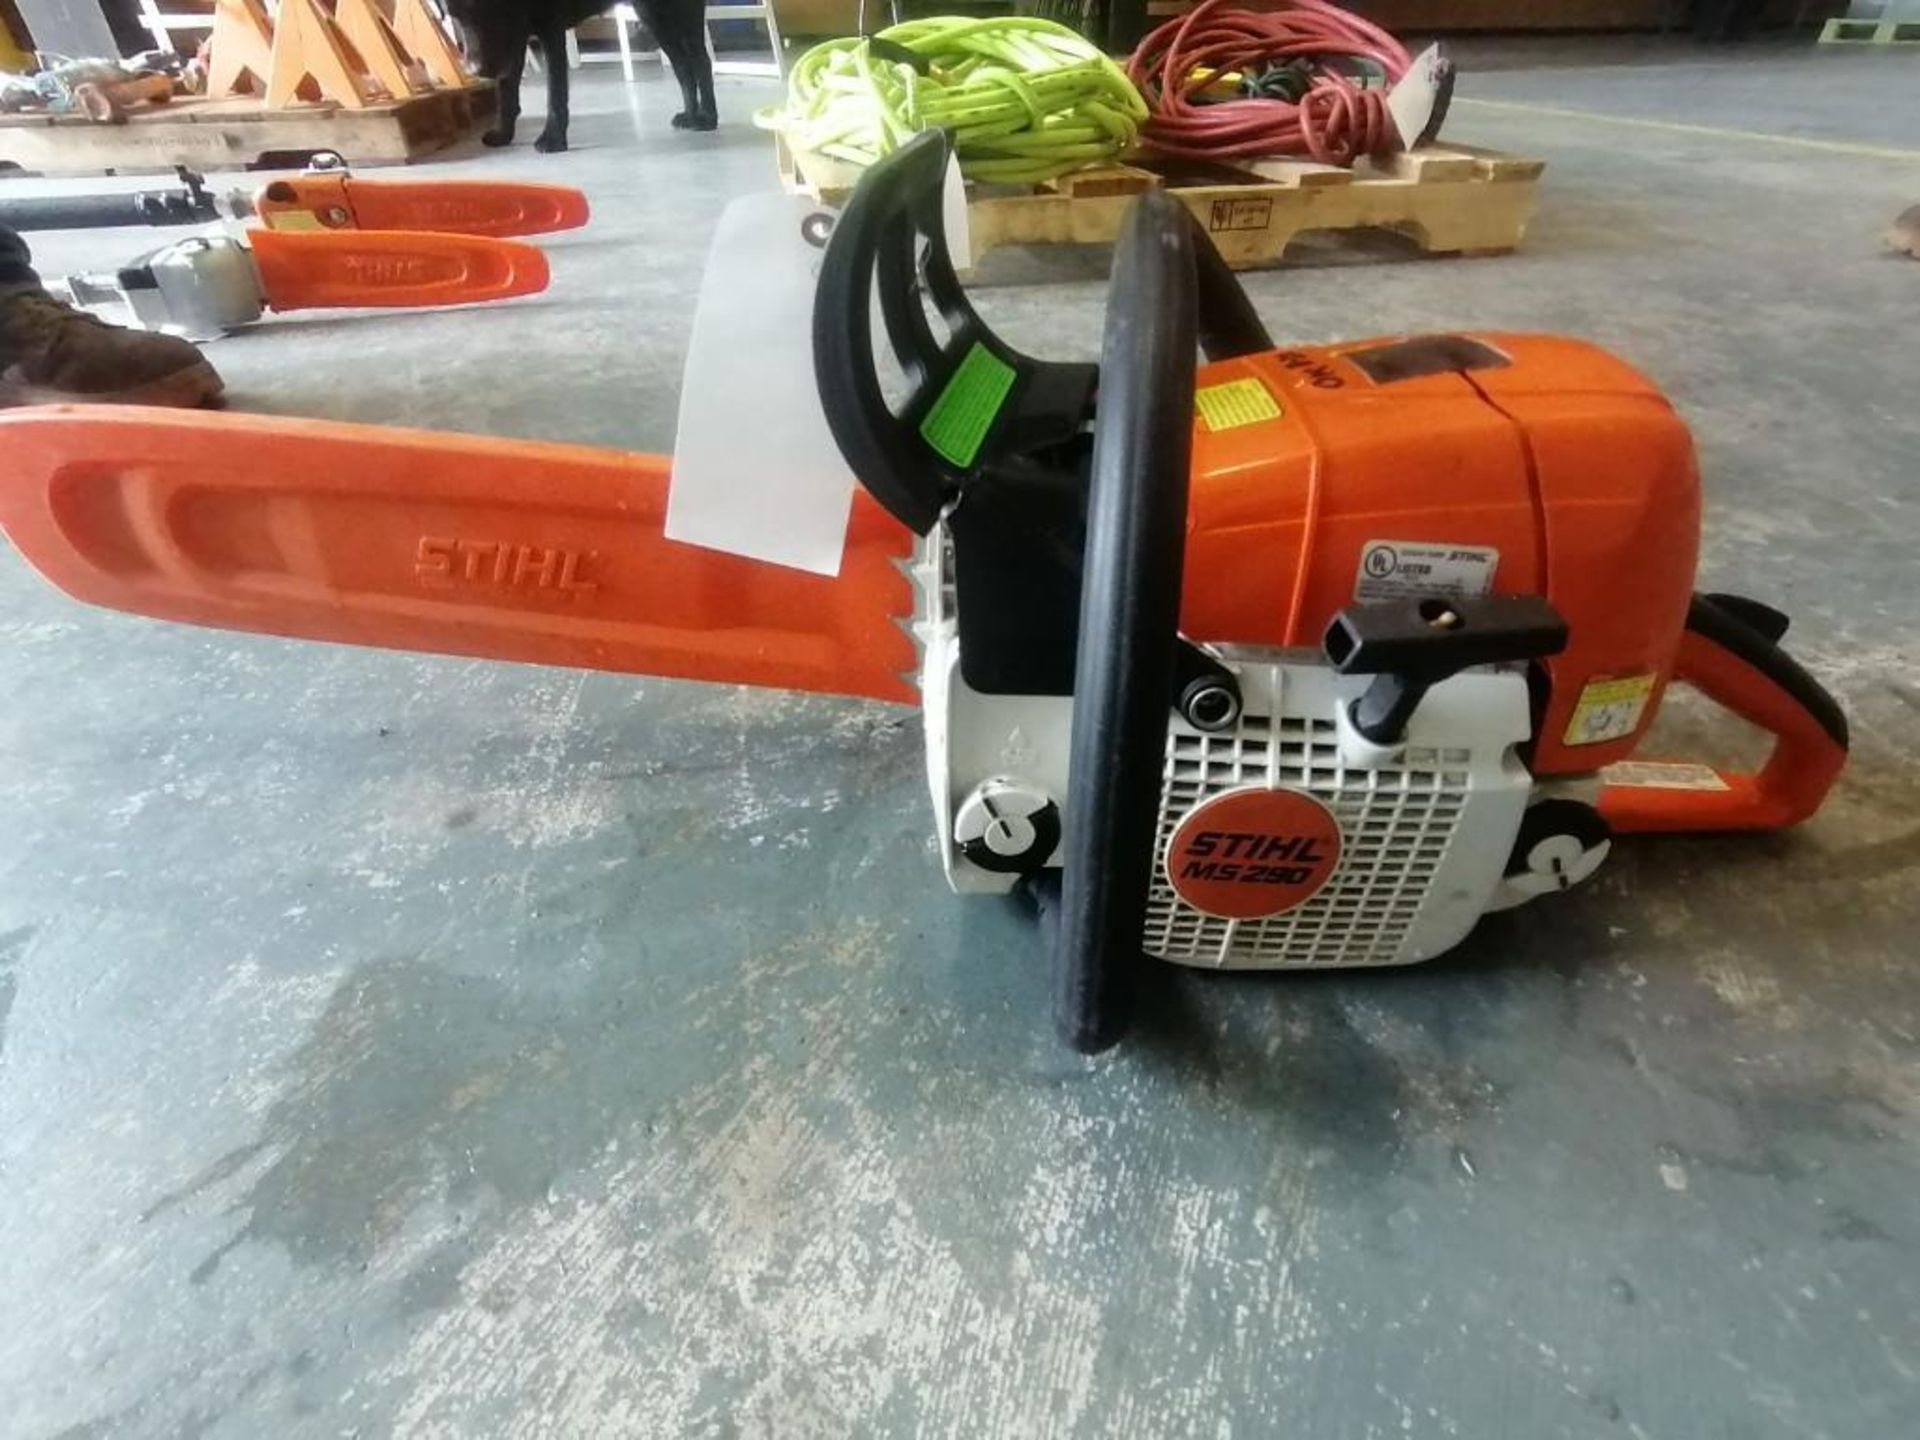 Lot 15 - (1) Stihl MS290 Chainsaw. Located at 301 E Henry Street, Mt. Pleasant, IA 52641.